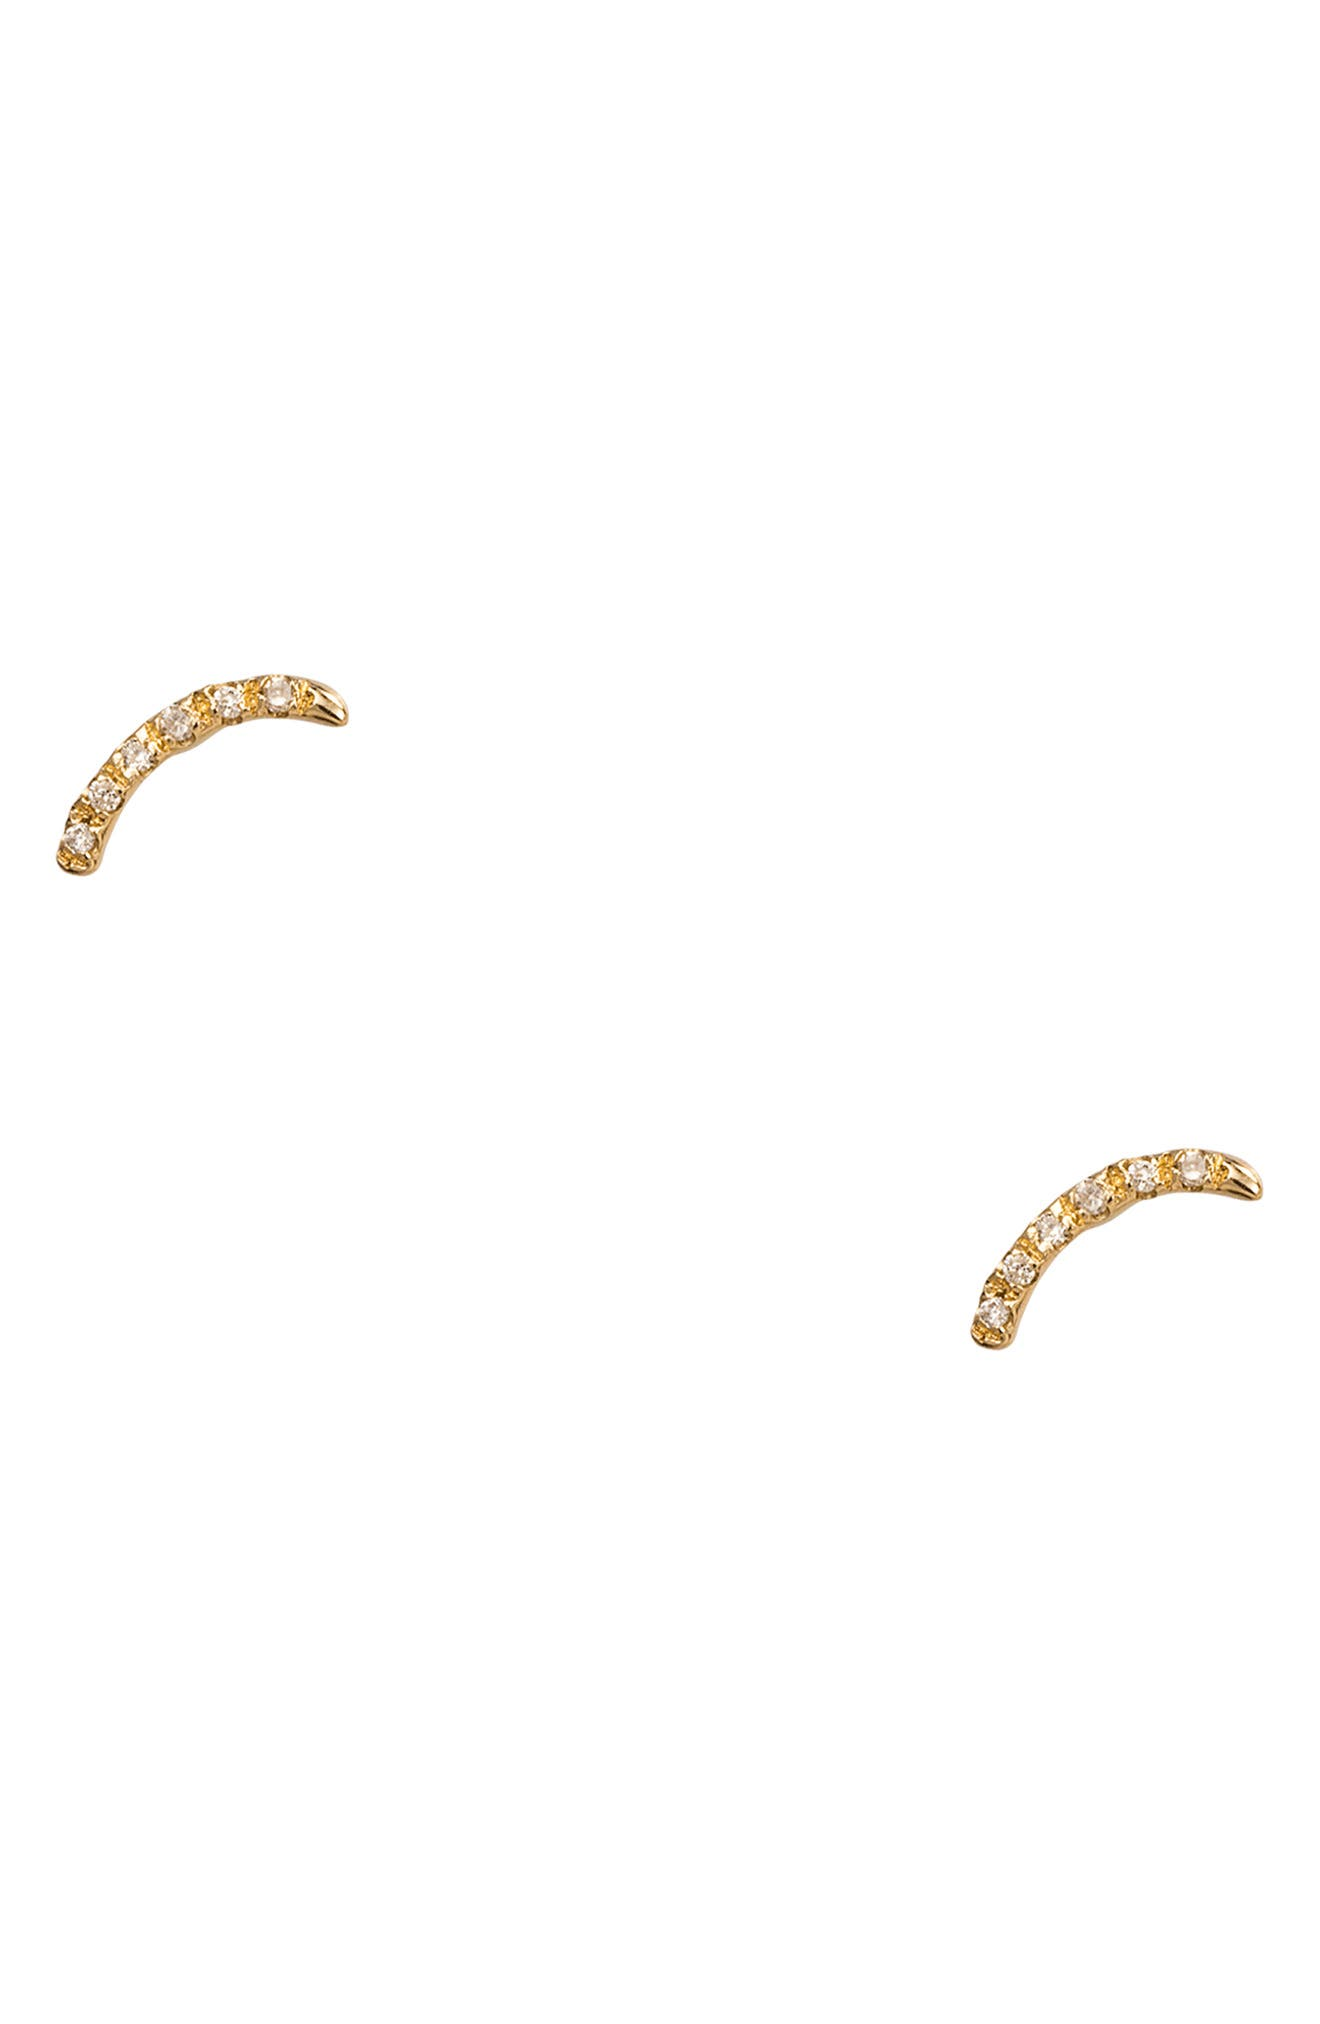 Micropavé Curved Diamond Earrings,                         Main,                         color, 14KT GOLD